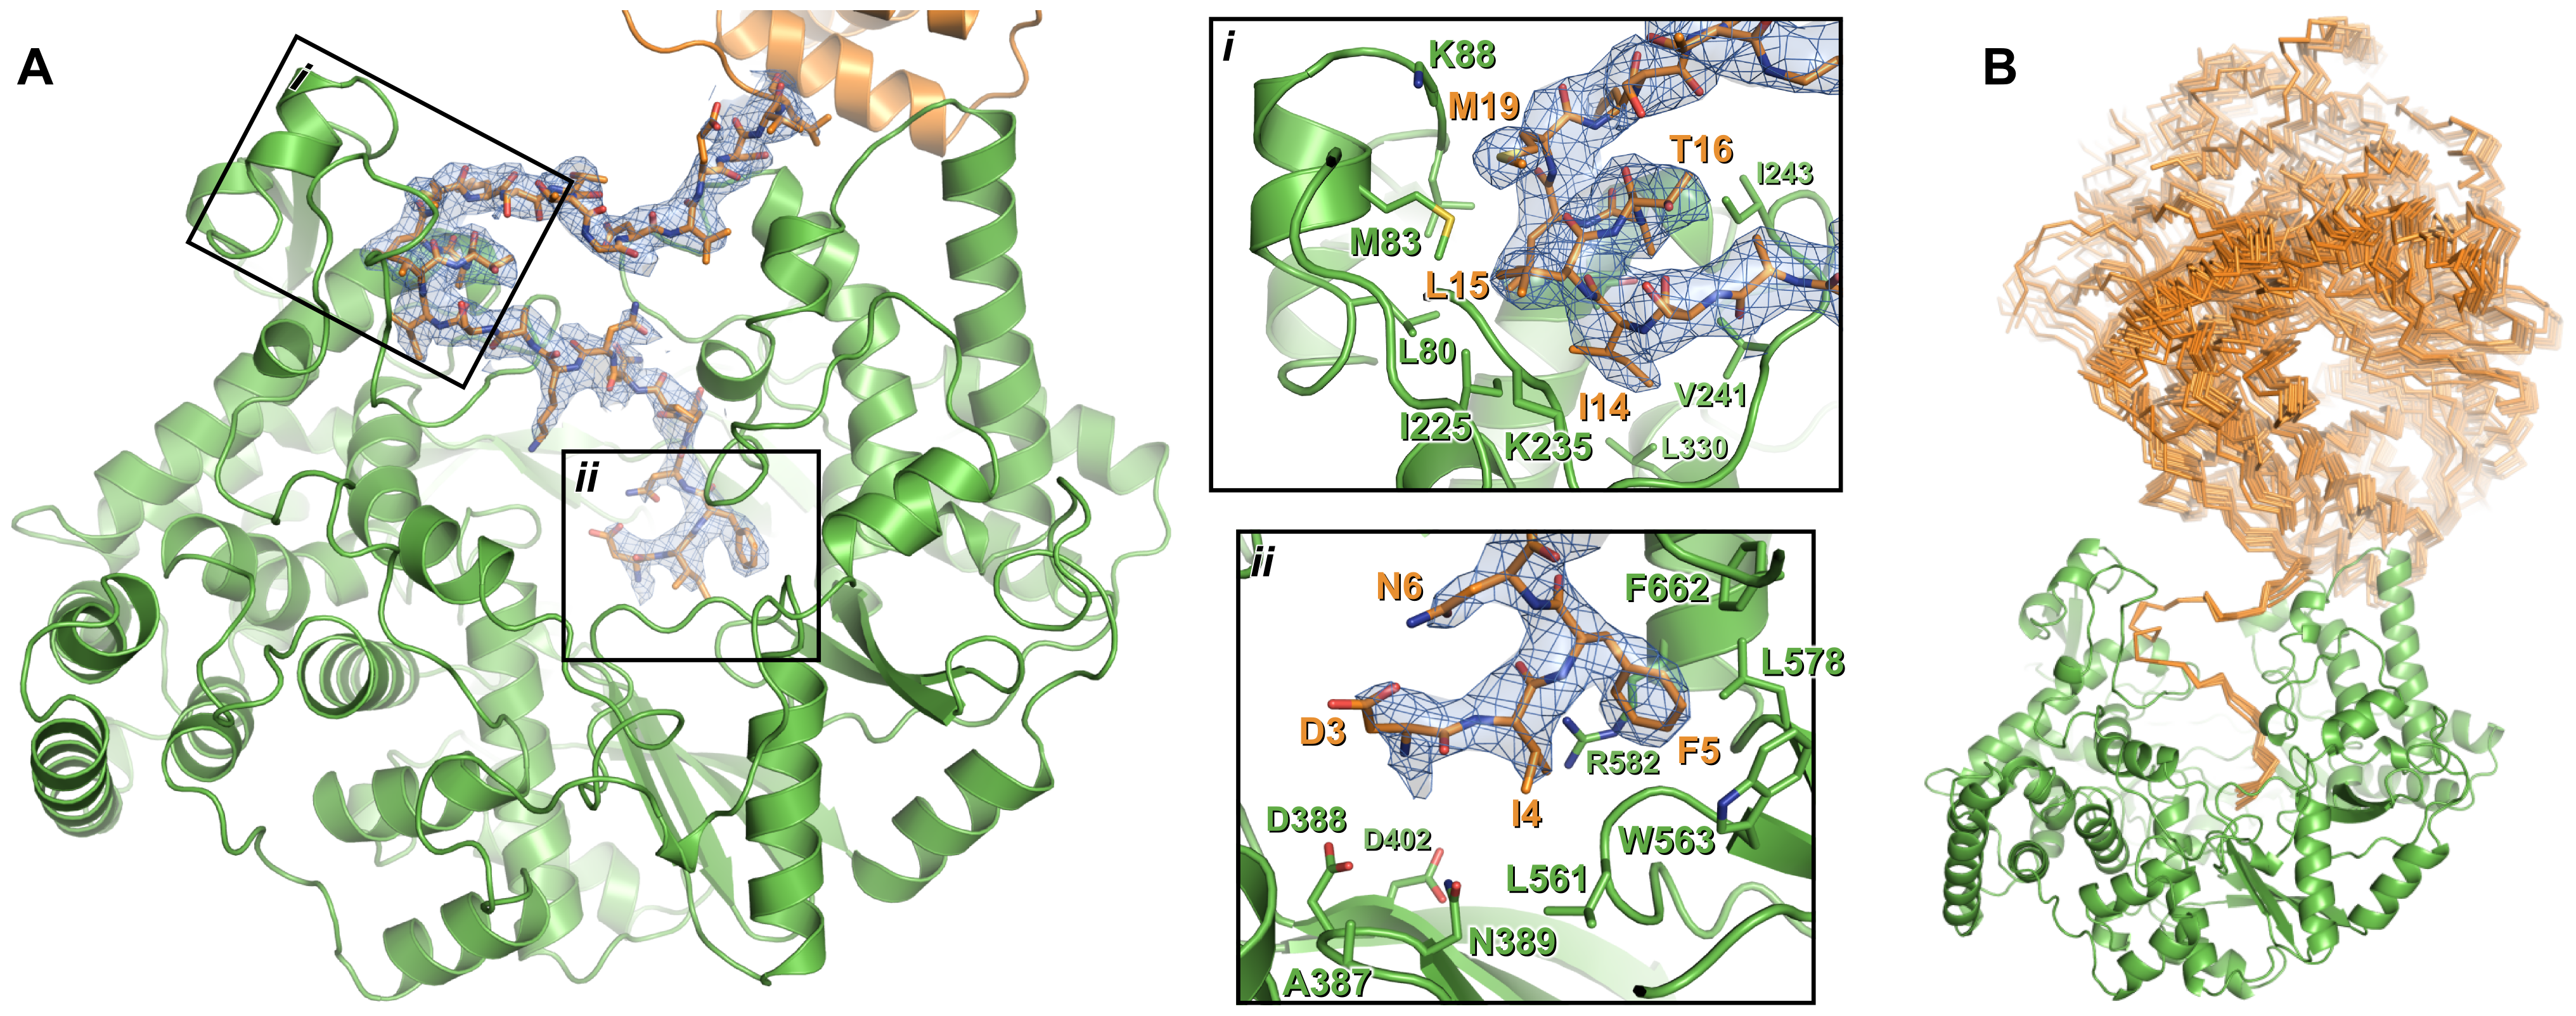 Interaction of the N-terminal tail with the polymerase domain of VP1.